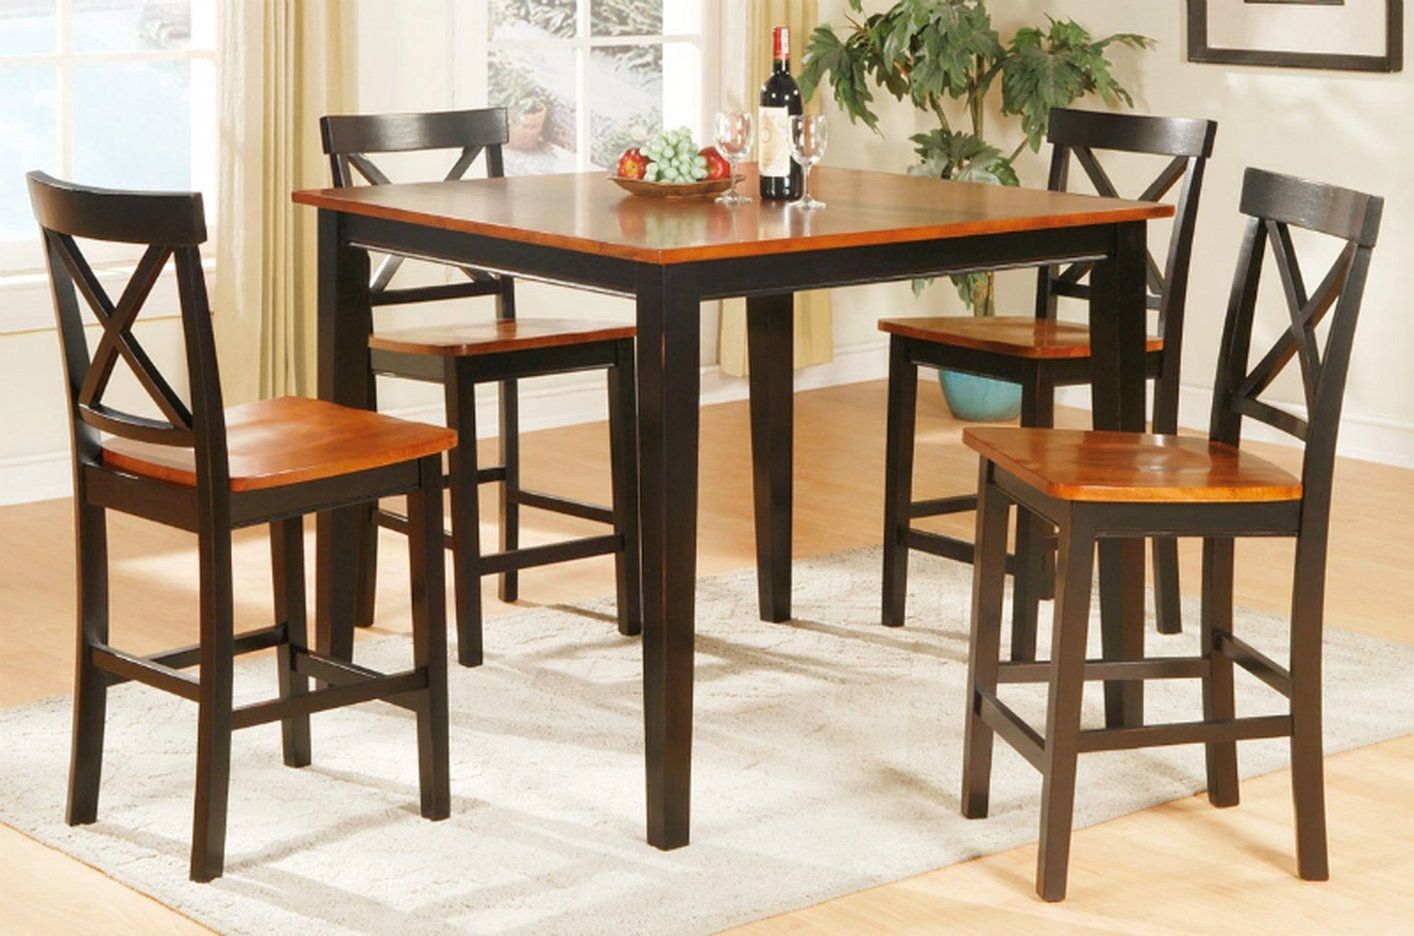 brown wood dining table and chair set gadgets gizmos pinterest rh pinterest com